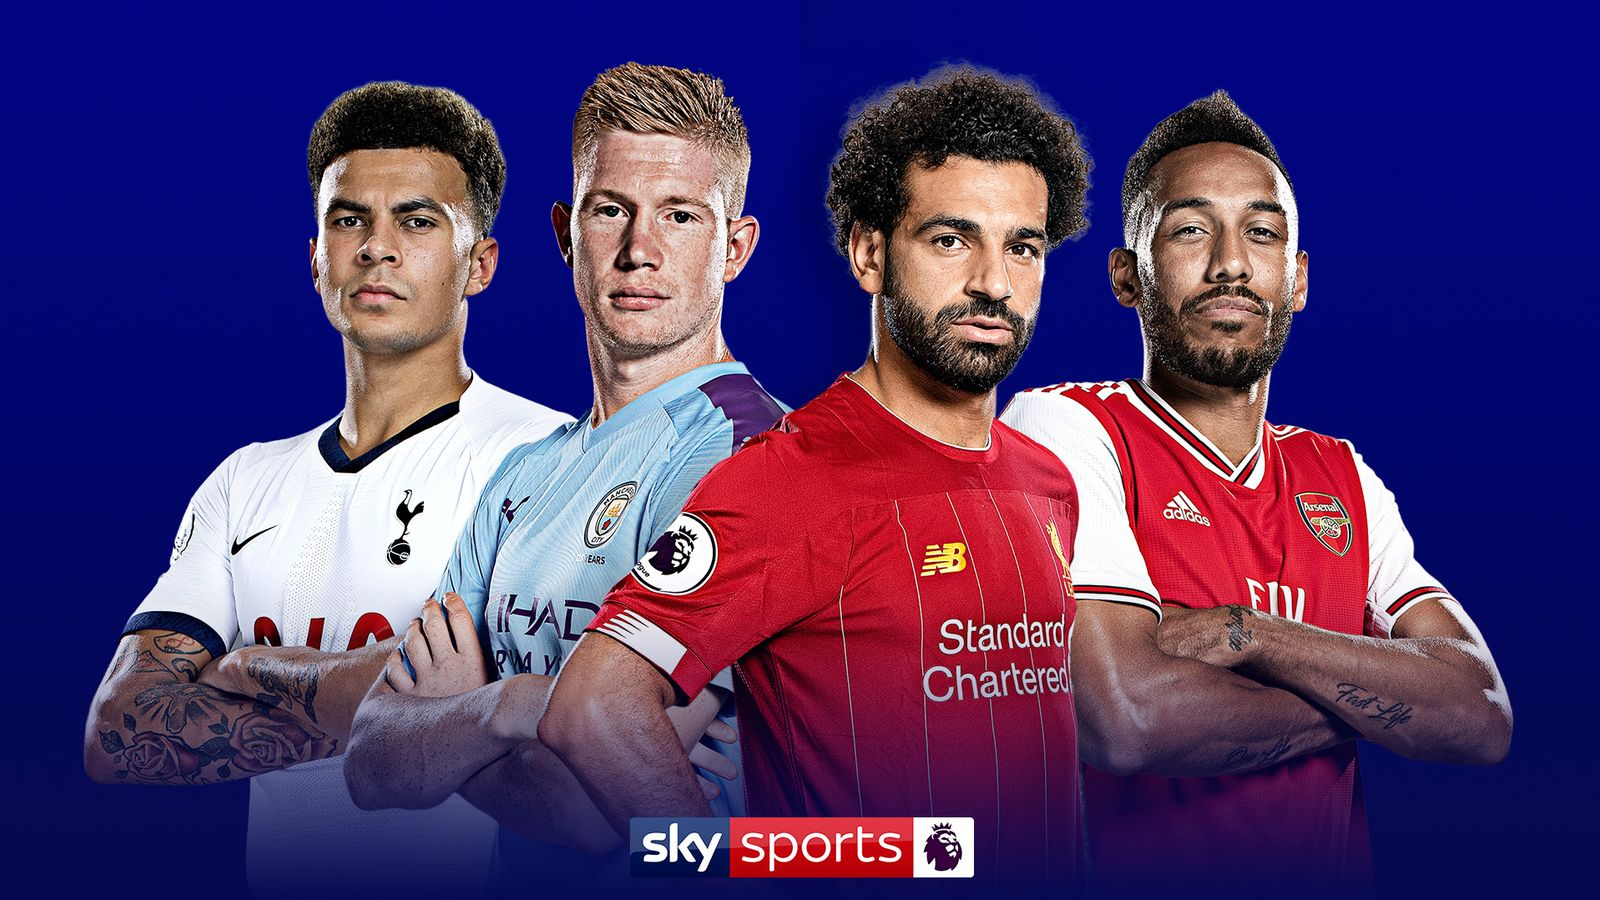 Premier League Fixtures Live On Sky Sports In April Watch Man City Vs Liverpool And Spurs Vs Arsenal Football News Sky Sports